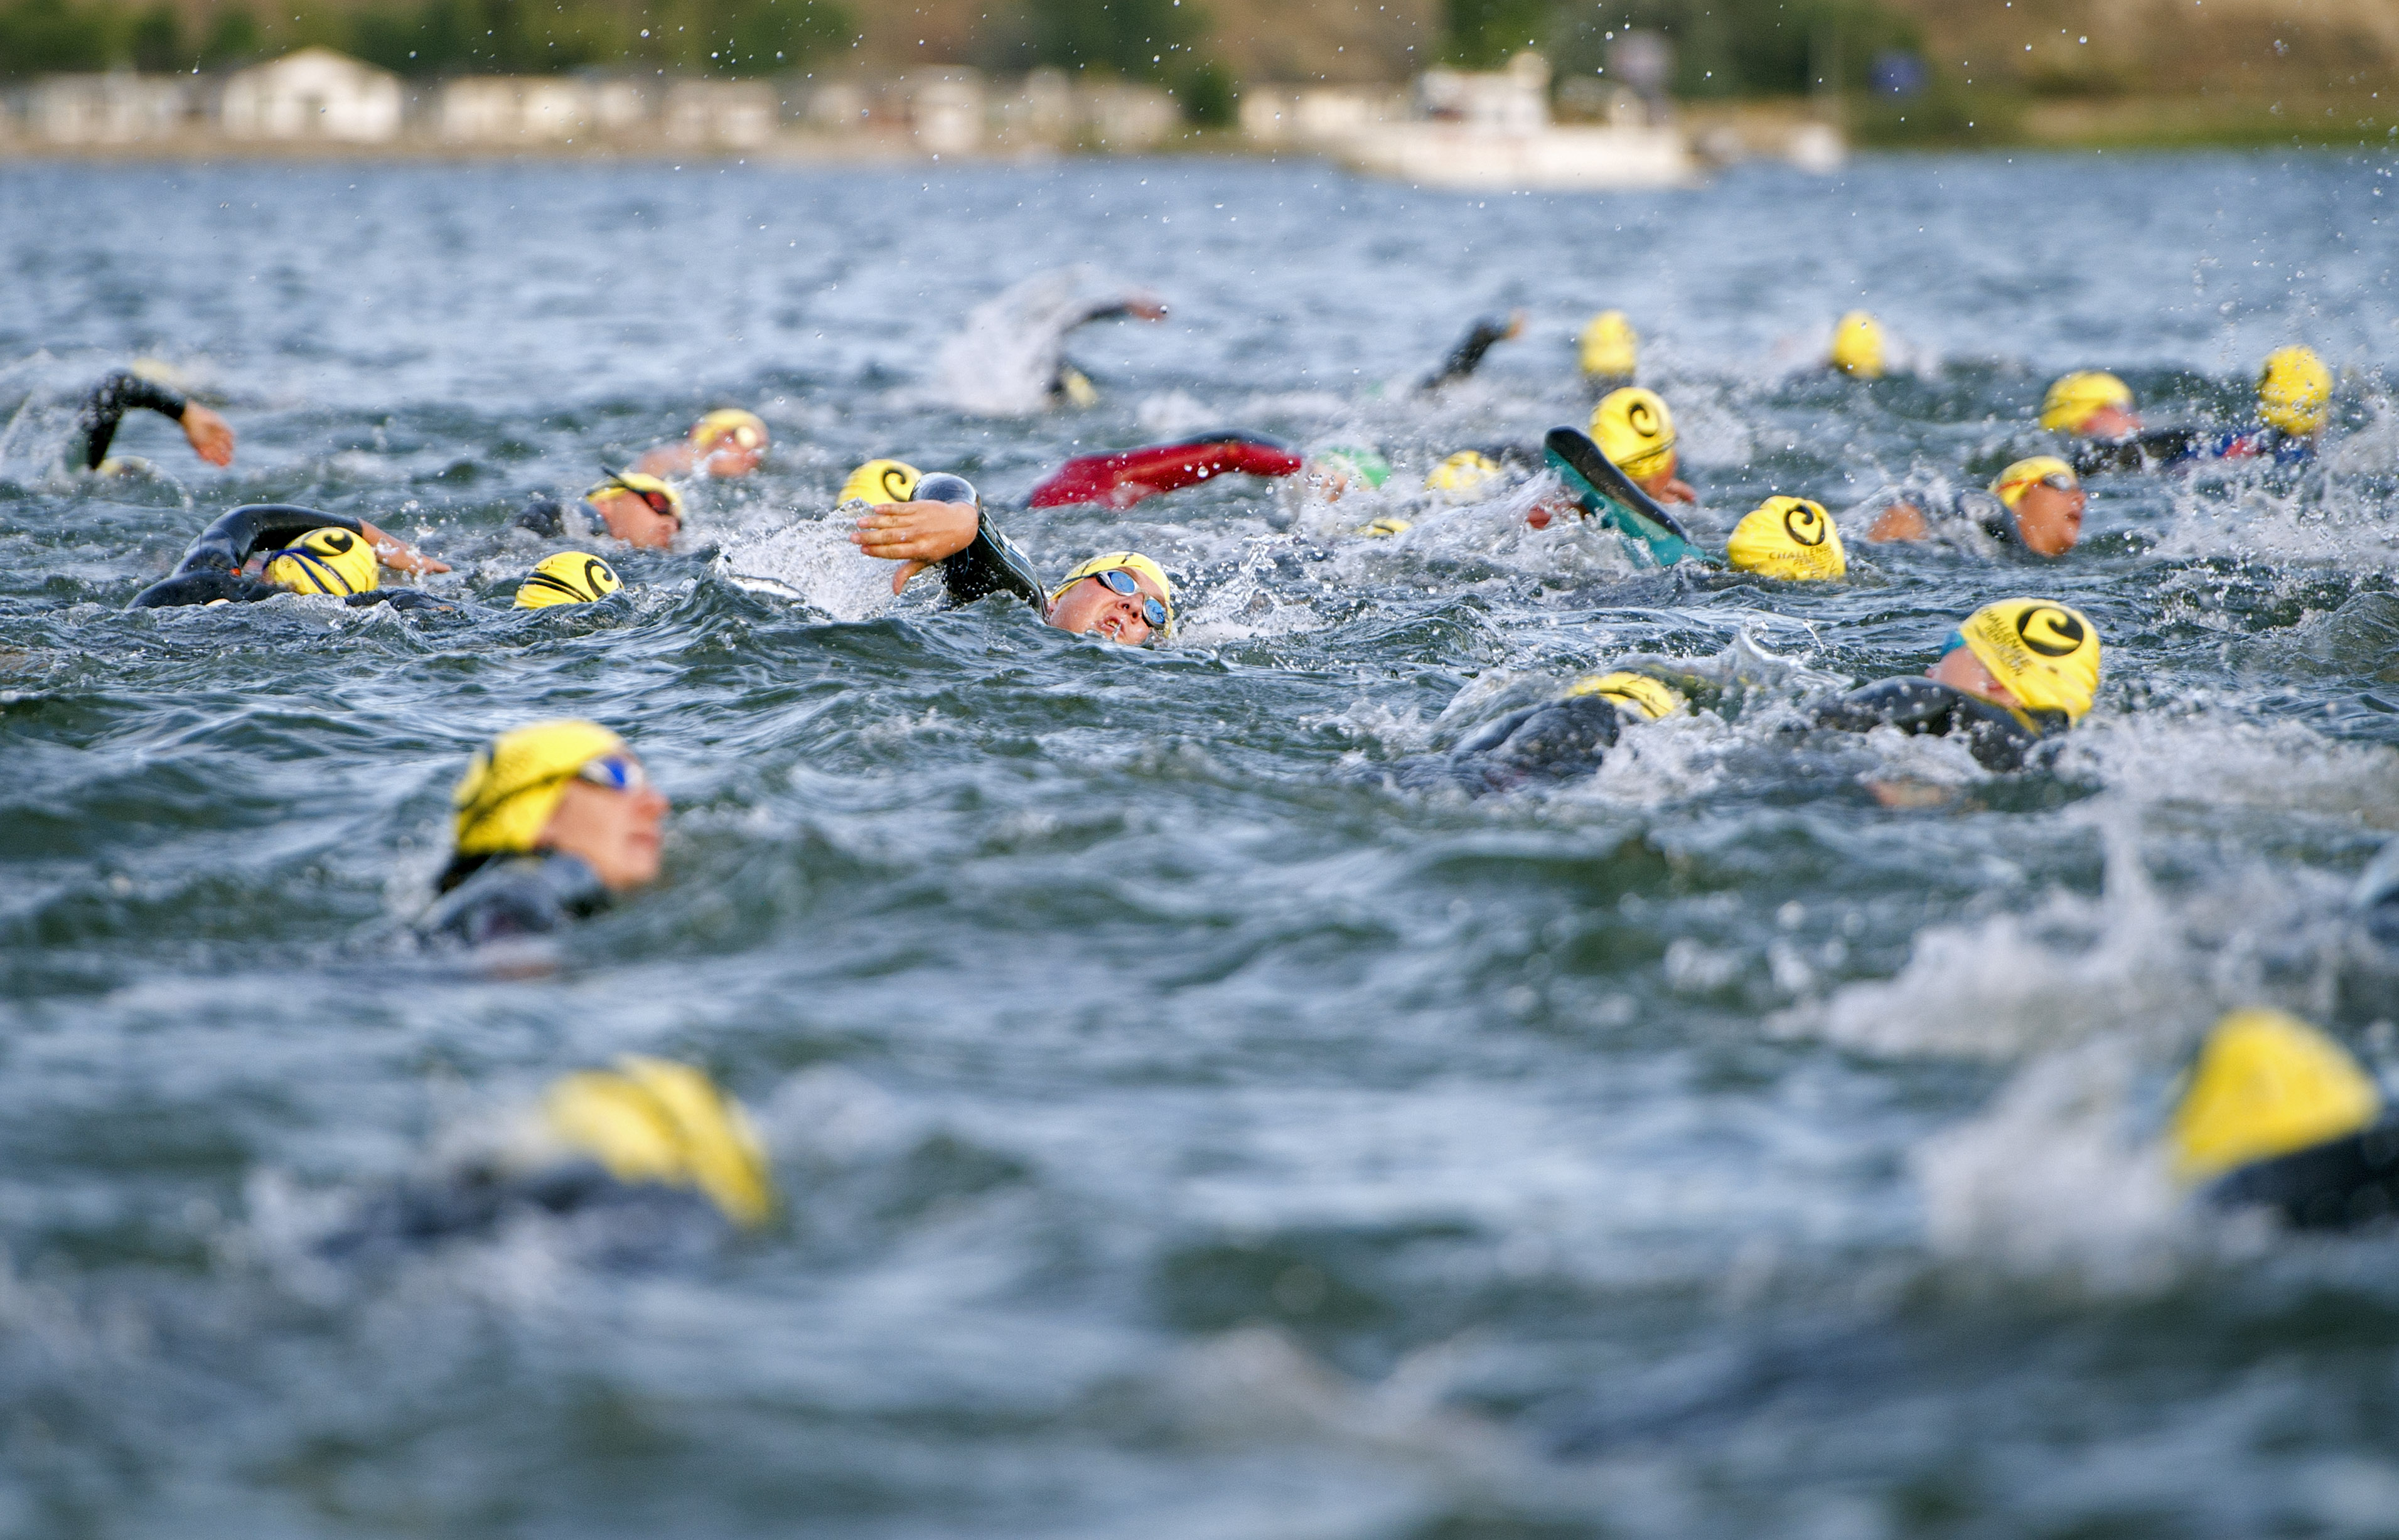 PENTICTON, BRITISH COLUMBIA, CANADA - AUGUST 25: Athletes take to the water the during the Challenge Penticton Triathlon on August 25, 2013 in Penticton, British Columbia, Canada. (Photo by Rich Lam/Getty Images) *** Local Caption ***